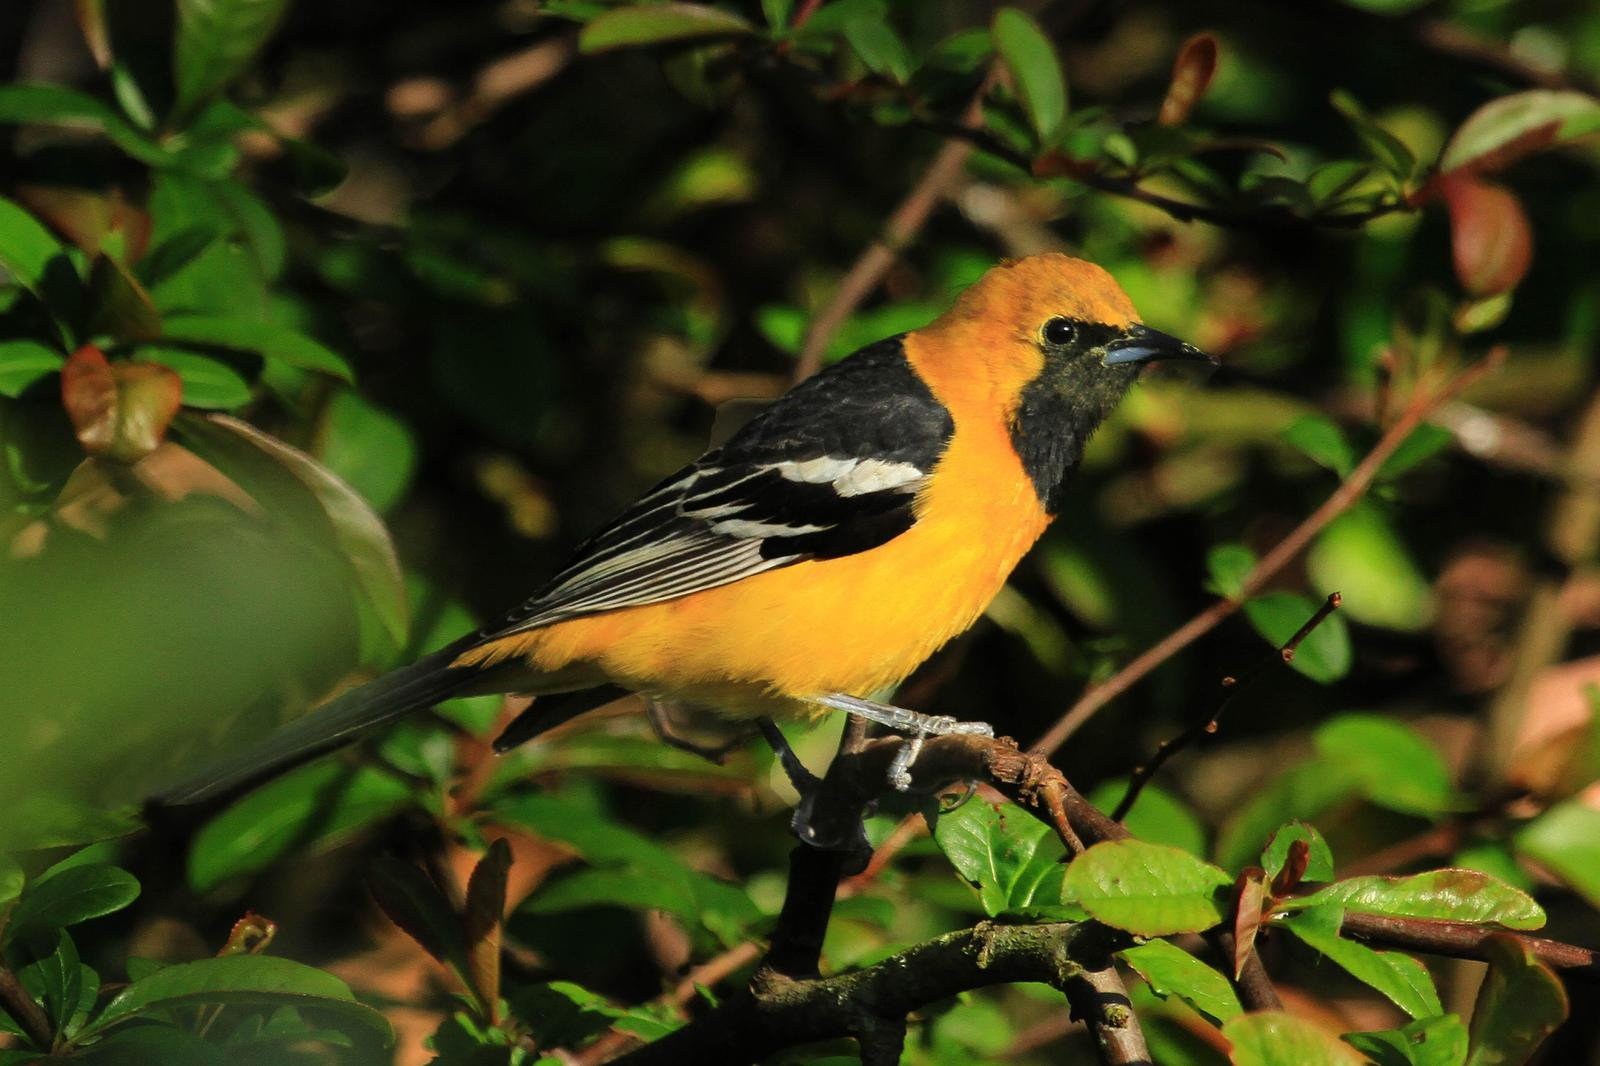 Hooded Oriole Photo by Donna Pomeroy